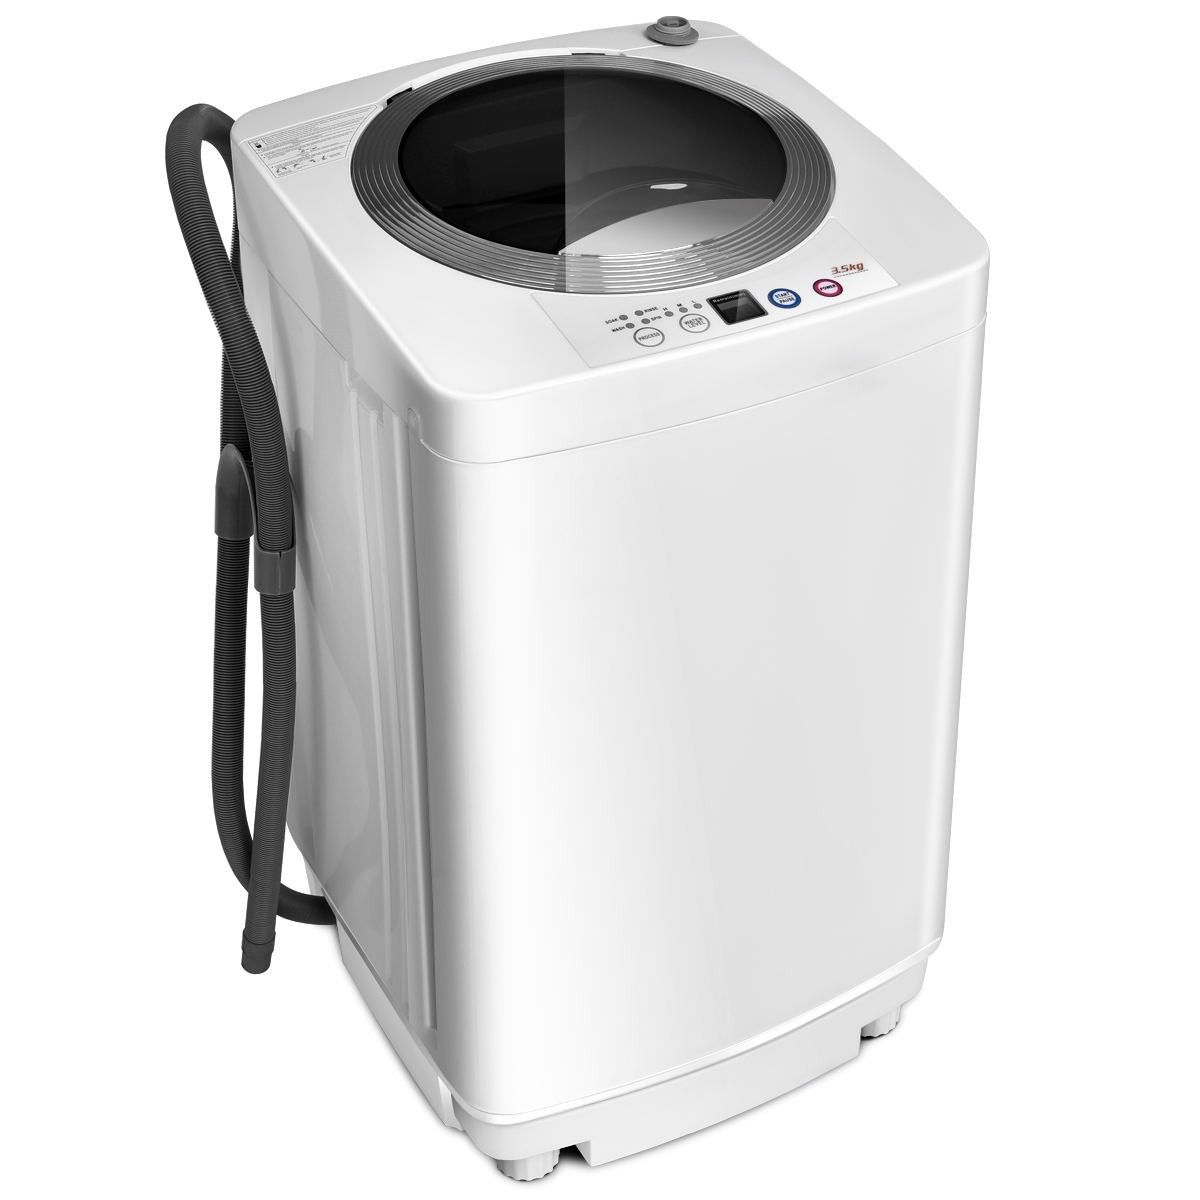 7 7 Lbs Automatic Laundry Washing Machine Material Stainless Steel Inner Tub Pp Plastic Metal Mini Washing Machine Portable Washing Machine Portable Washer